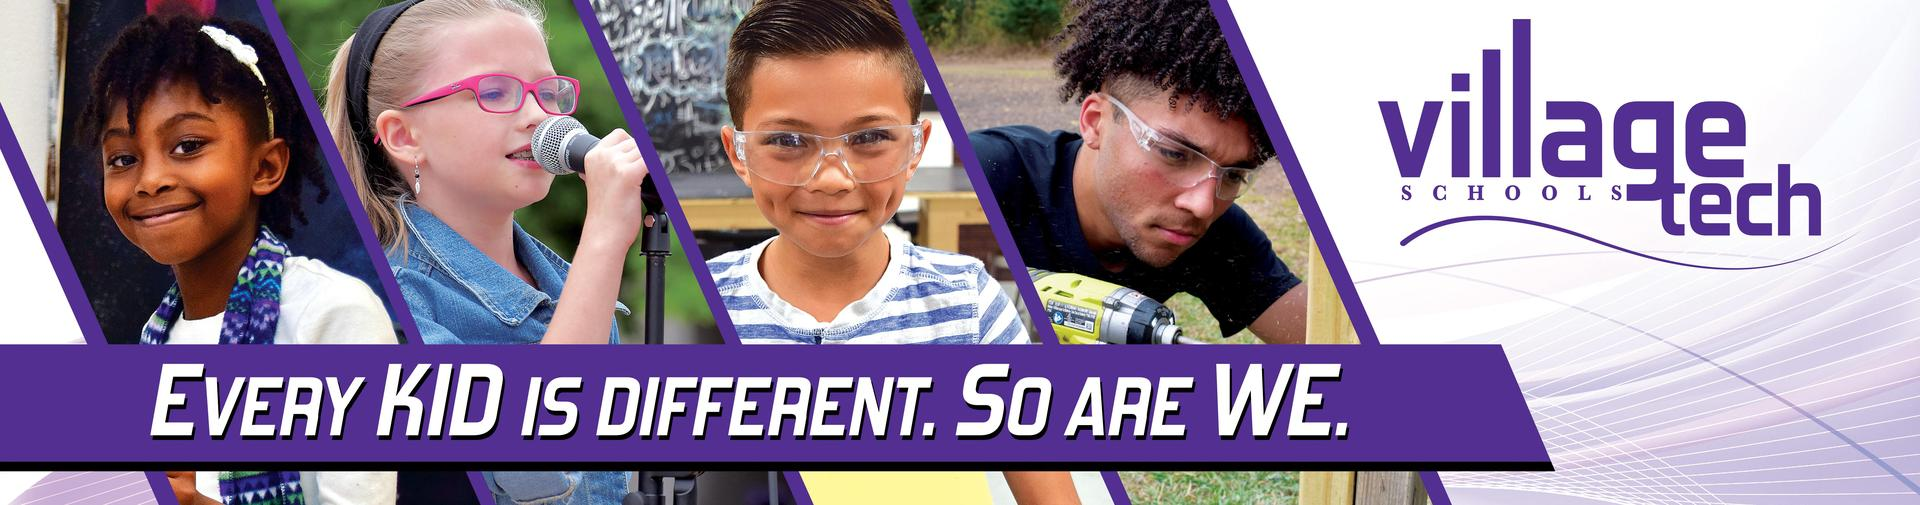 Every kid is different. So are we.